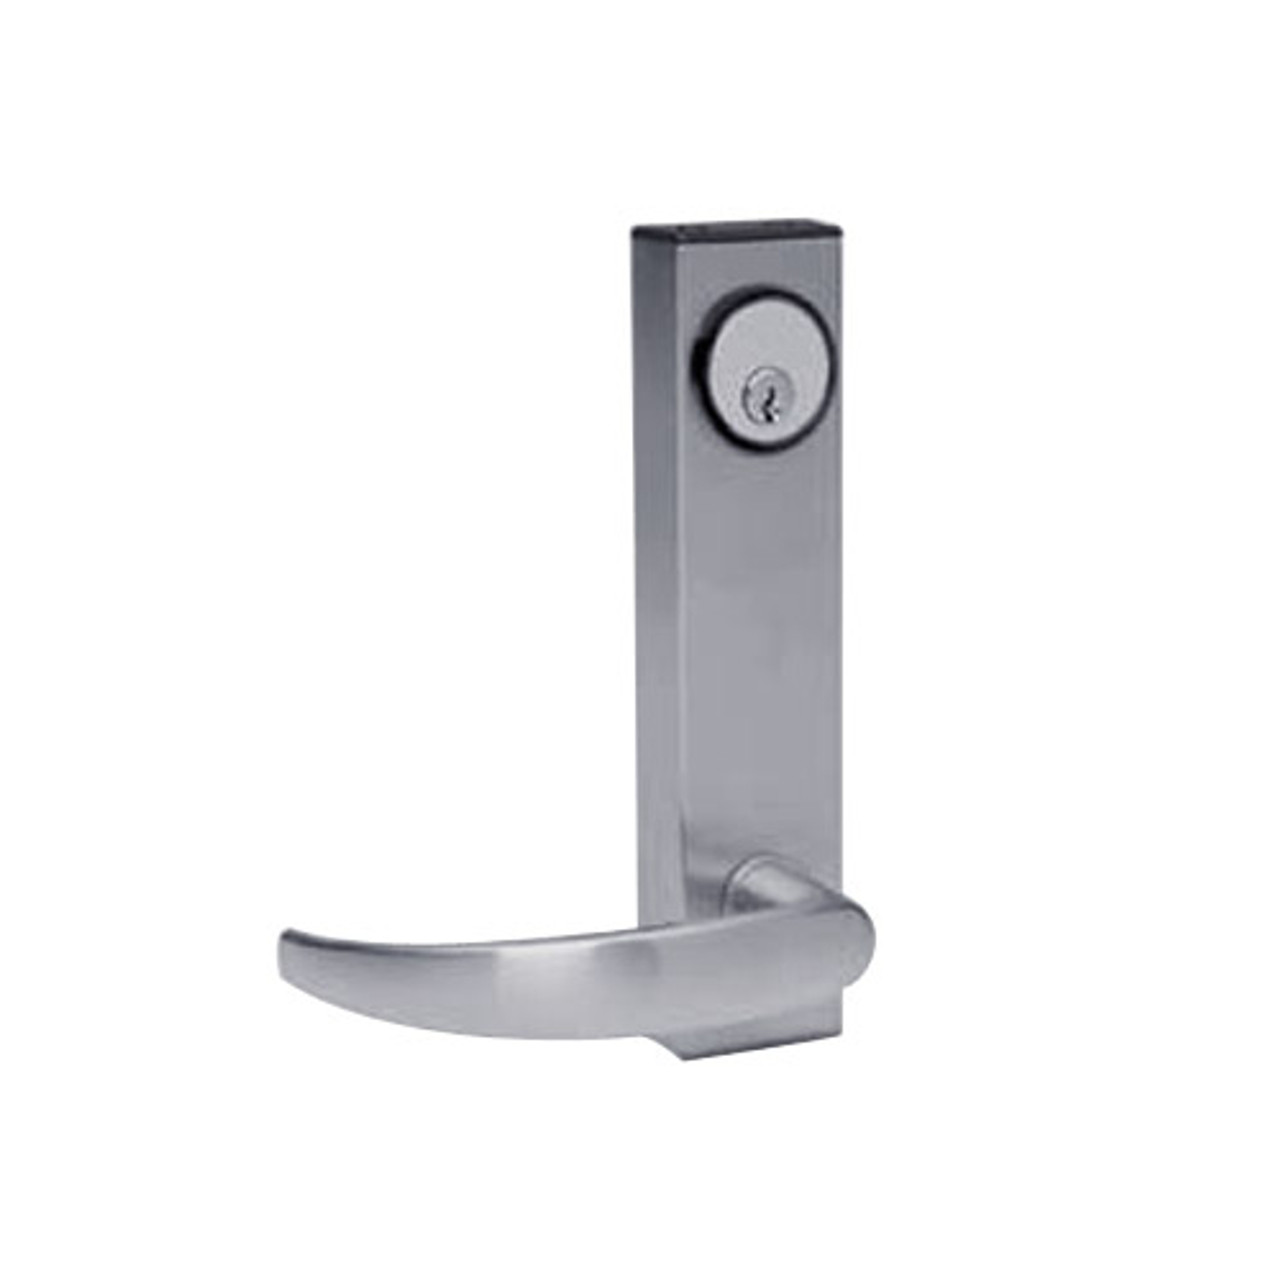 3080E-01-0-96-50 US32D Adams Rite Electrified Entry Trim with Curve Lever in Satin Stainless Finish